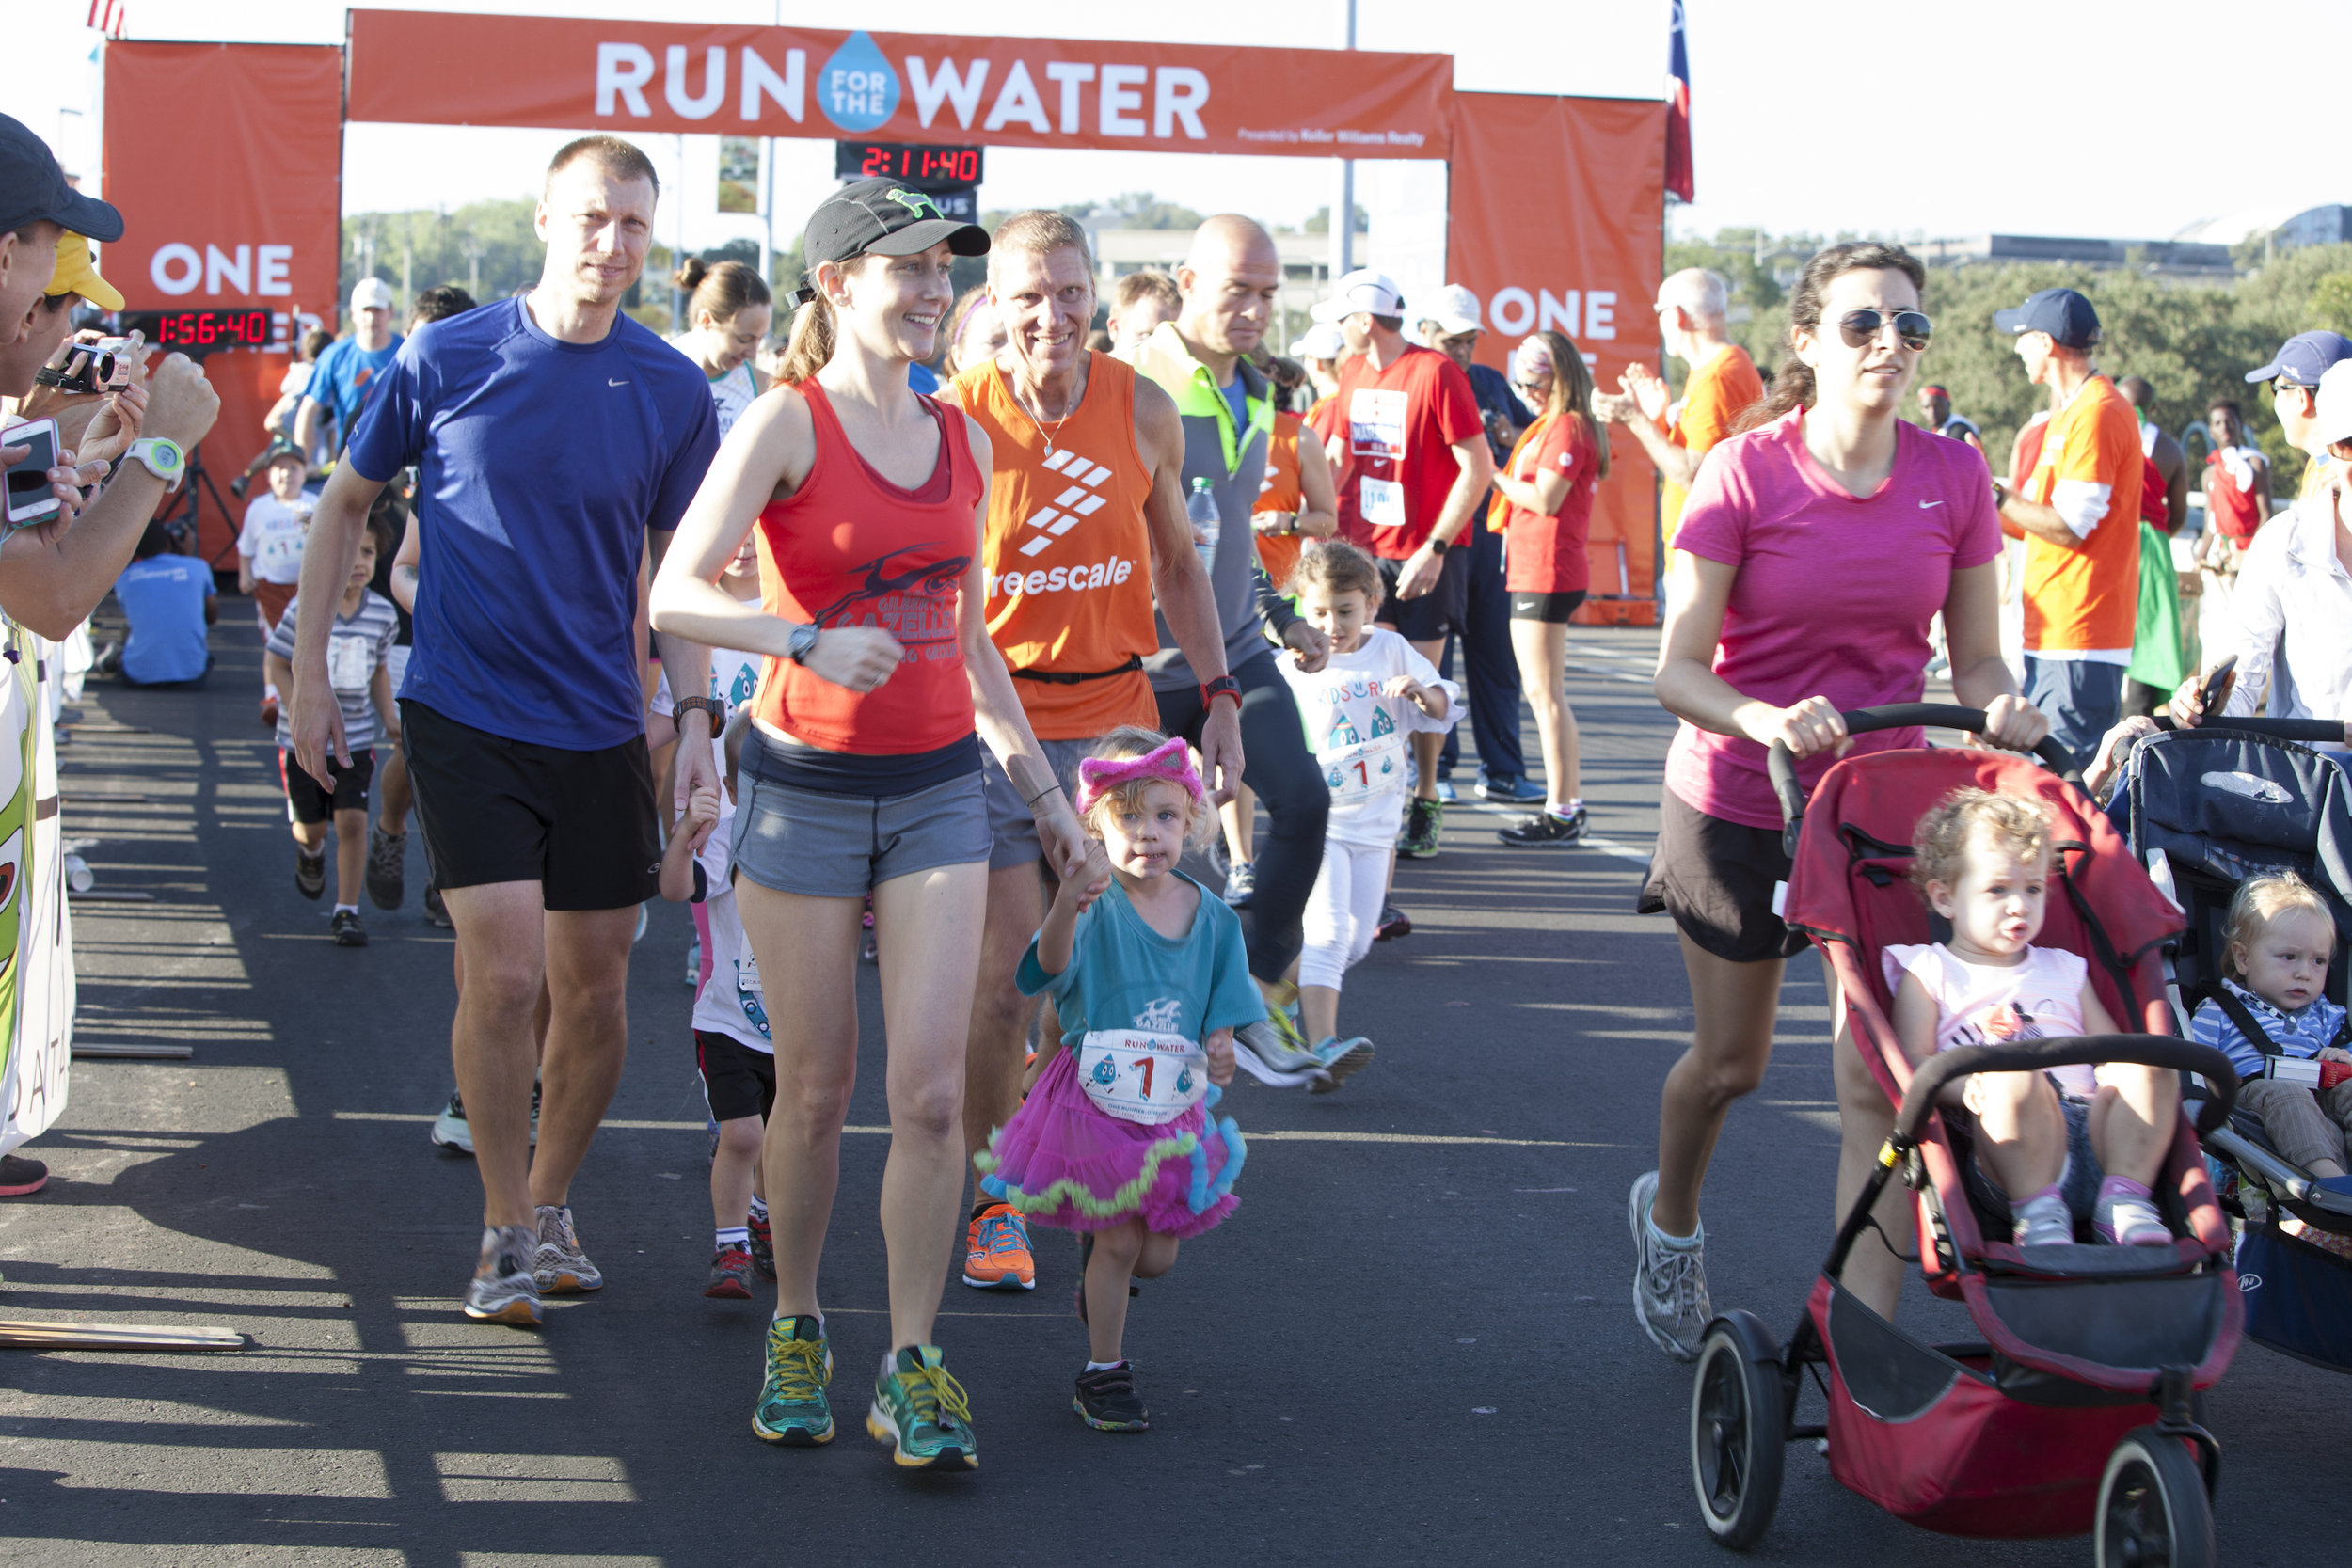 Austin, Texas - July 2, 2019 - Austin Ear Nose and Throat Clinic are the presenting sponsor of the Water Hero Kids K at the thirteenth annual Run For The Water. A uniquely transformative event, every entry to Run For The Water allows the Gazelle Foundation to provide a person in Burundi with access to clean water – for life. The Water Hero Kids K is a fun way for kids to be active and gain a deeper understanding of water scarcity, consumption, and their role and ability to be engaged, global citizens.